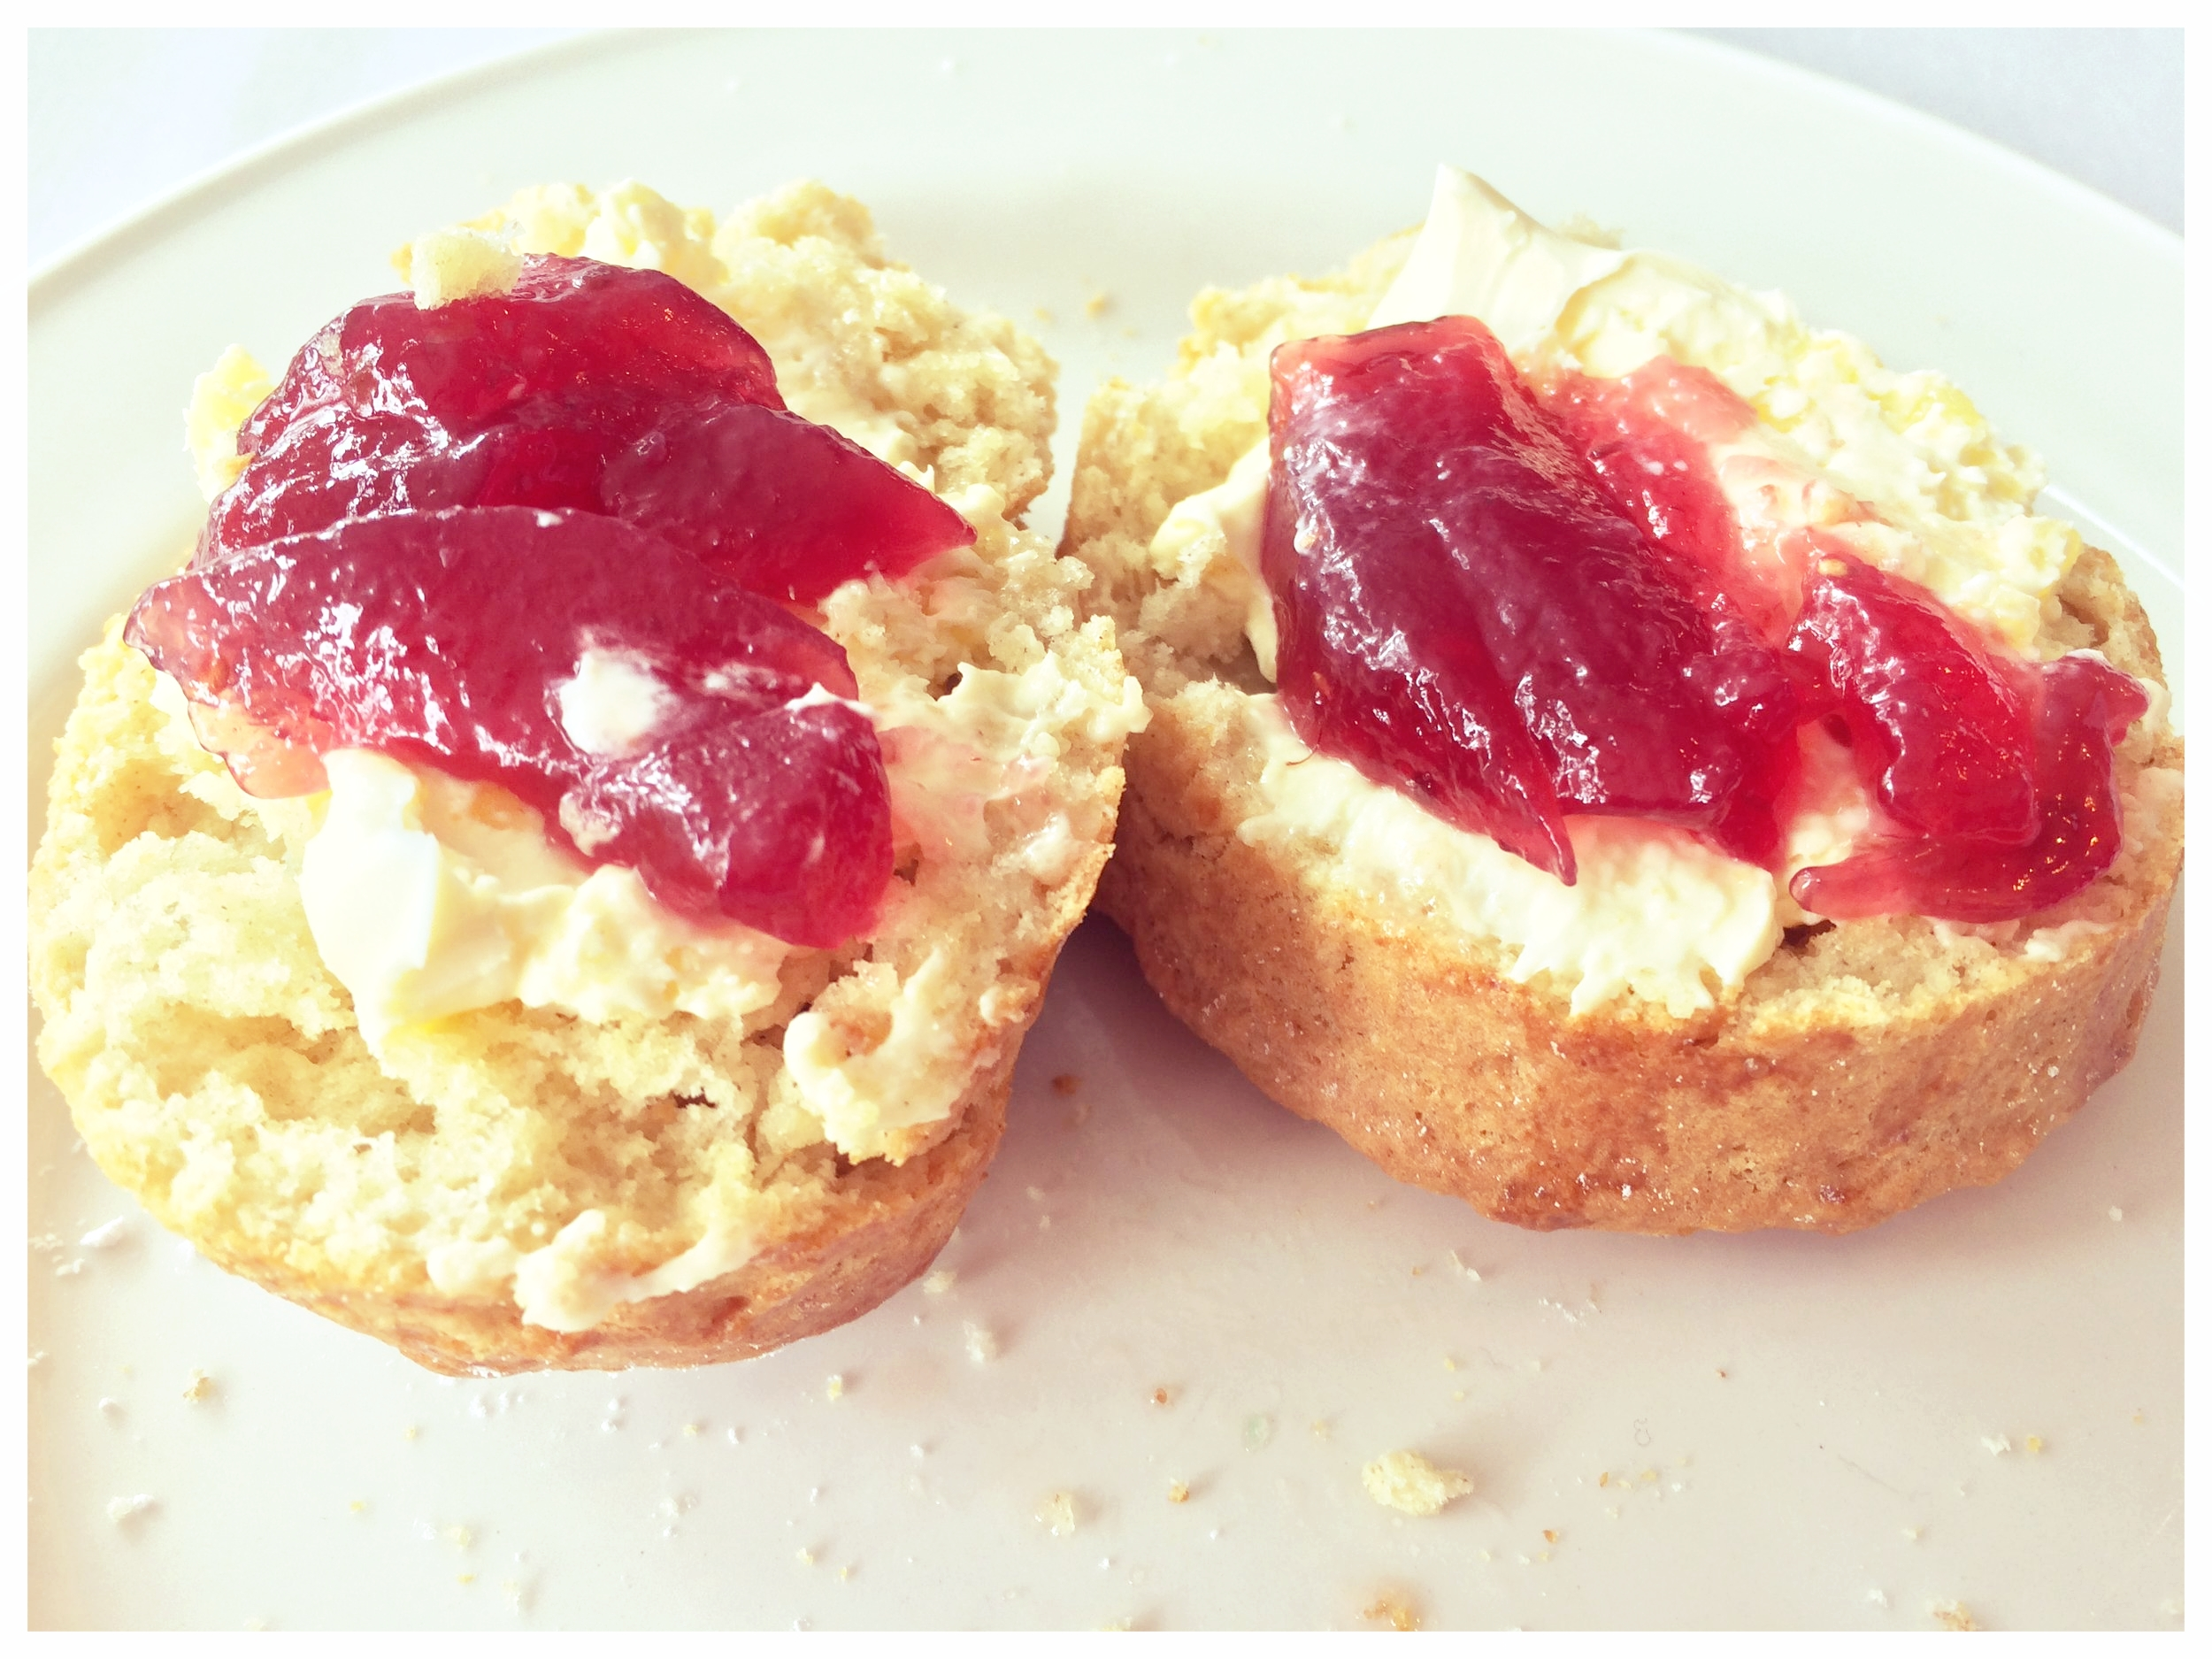 scones and jam cromwell hotel stevenage hertfordshire